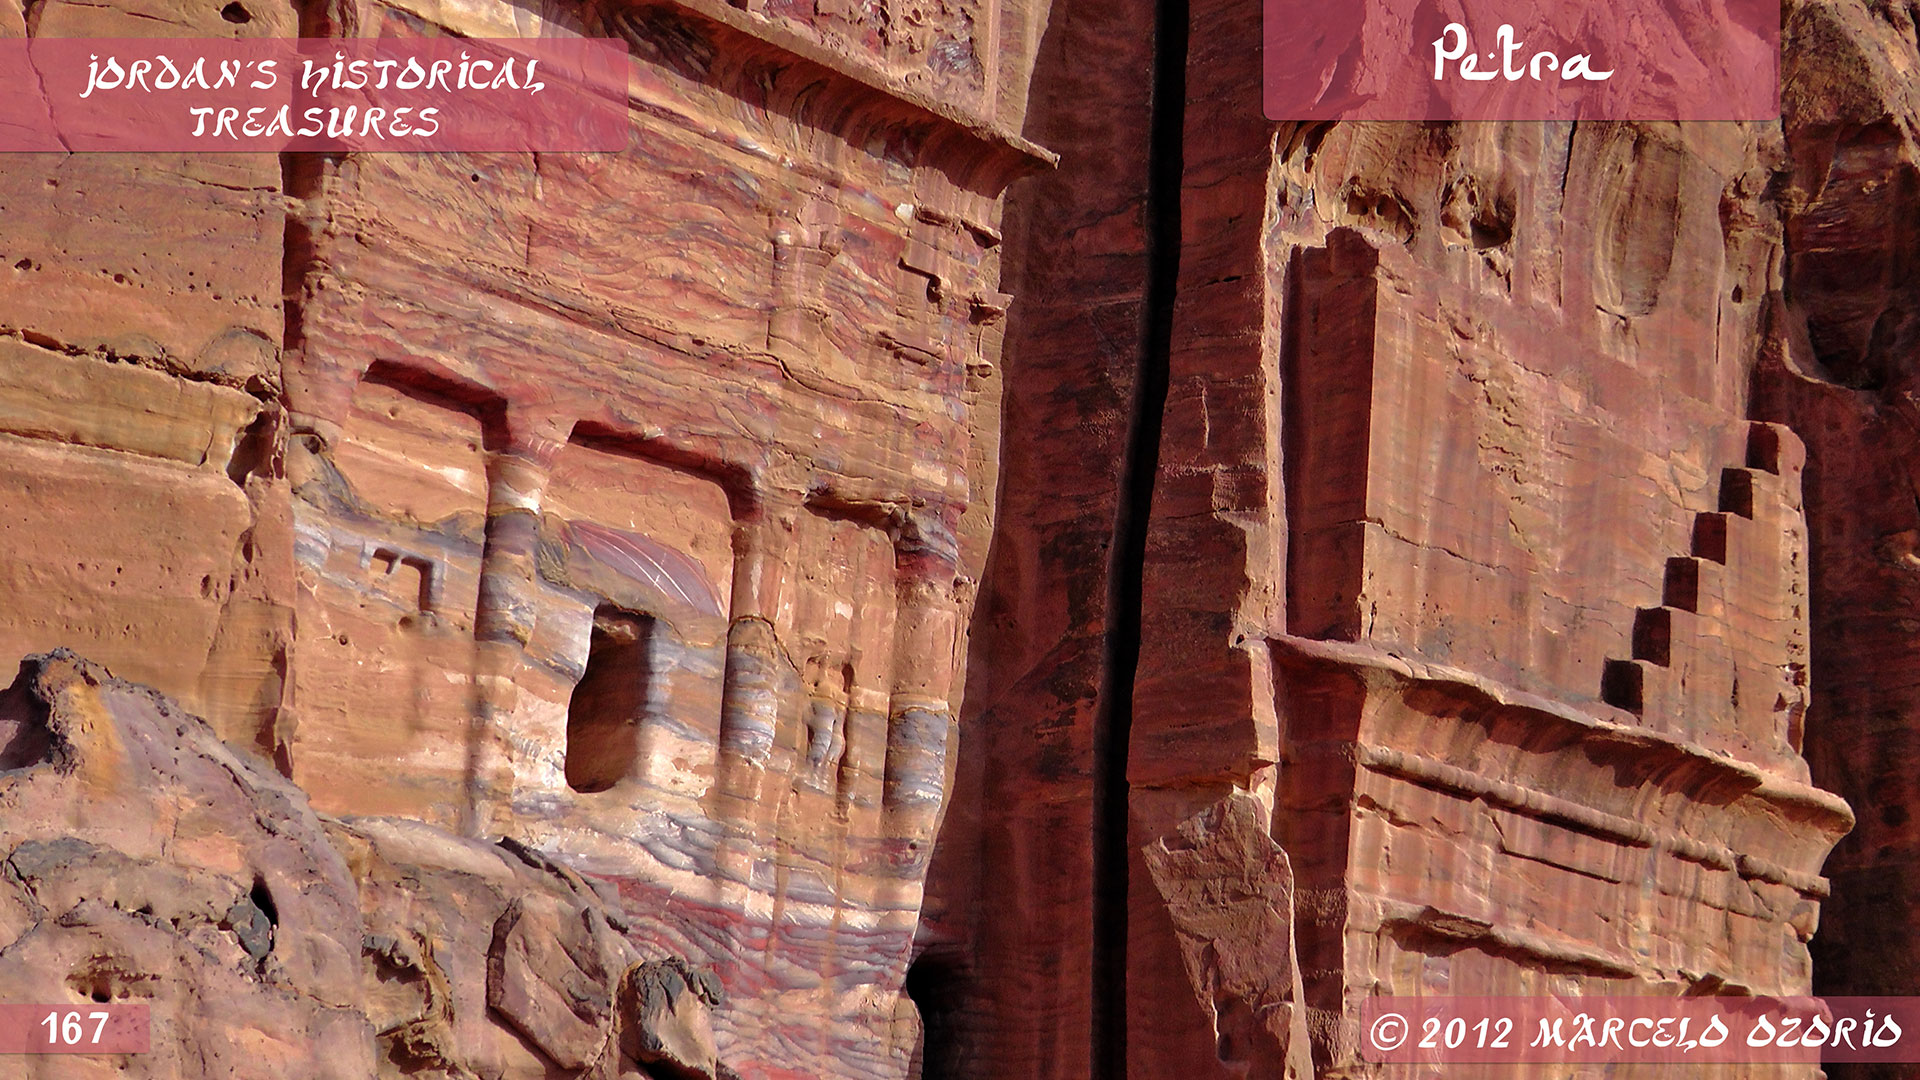 Petra Archaeological City Jordan 87 - The Astonishing Treasure at Petra - Jordan